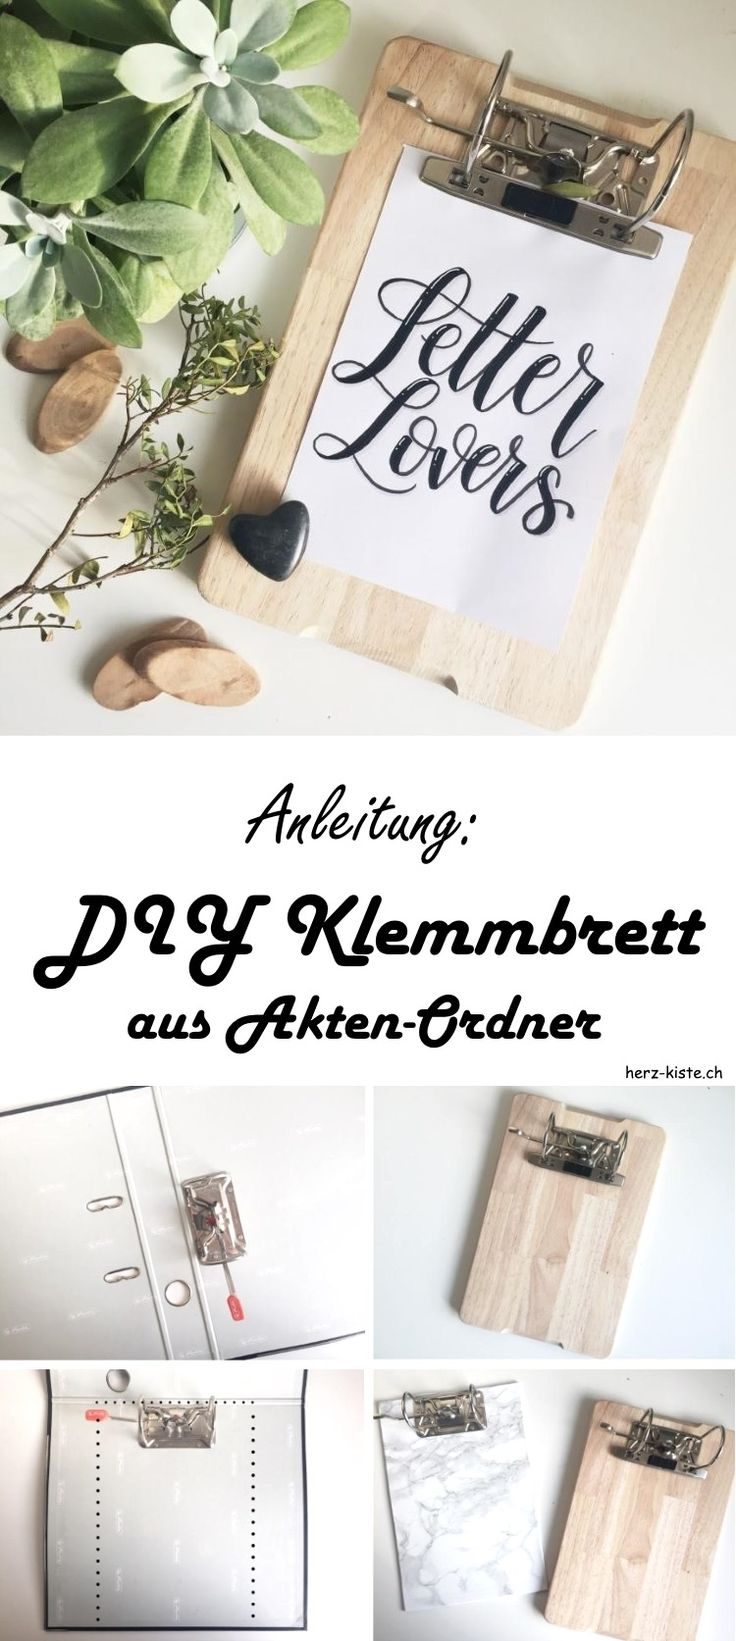 4533 besten diy ideen auf deutsch bilder auf pinterest deutsch diy geschenke und diy ideen. Black Bedroom Furniture Sets. Home Design Ideas